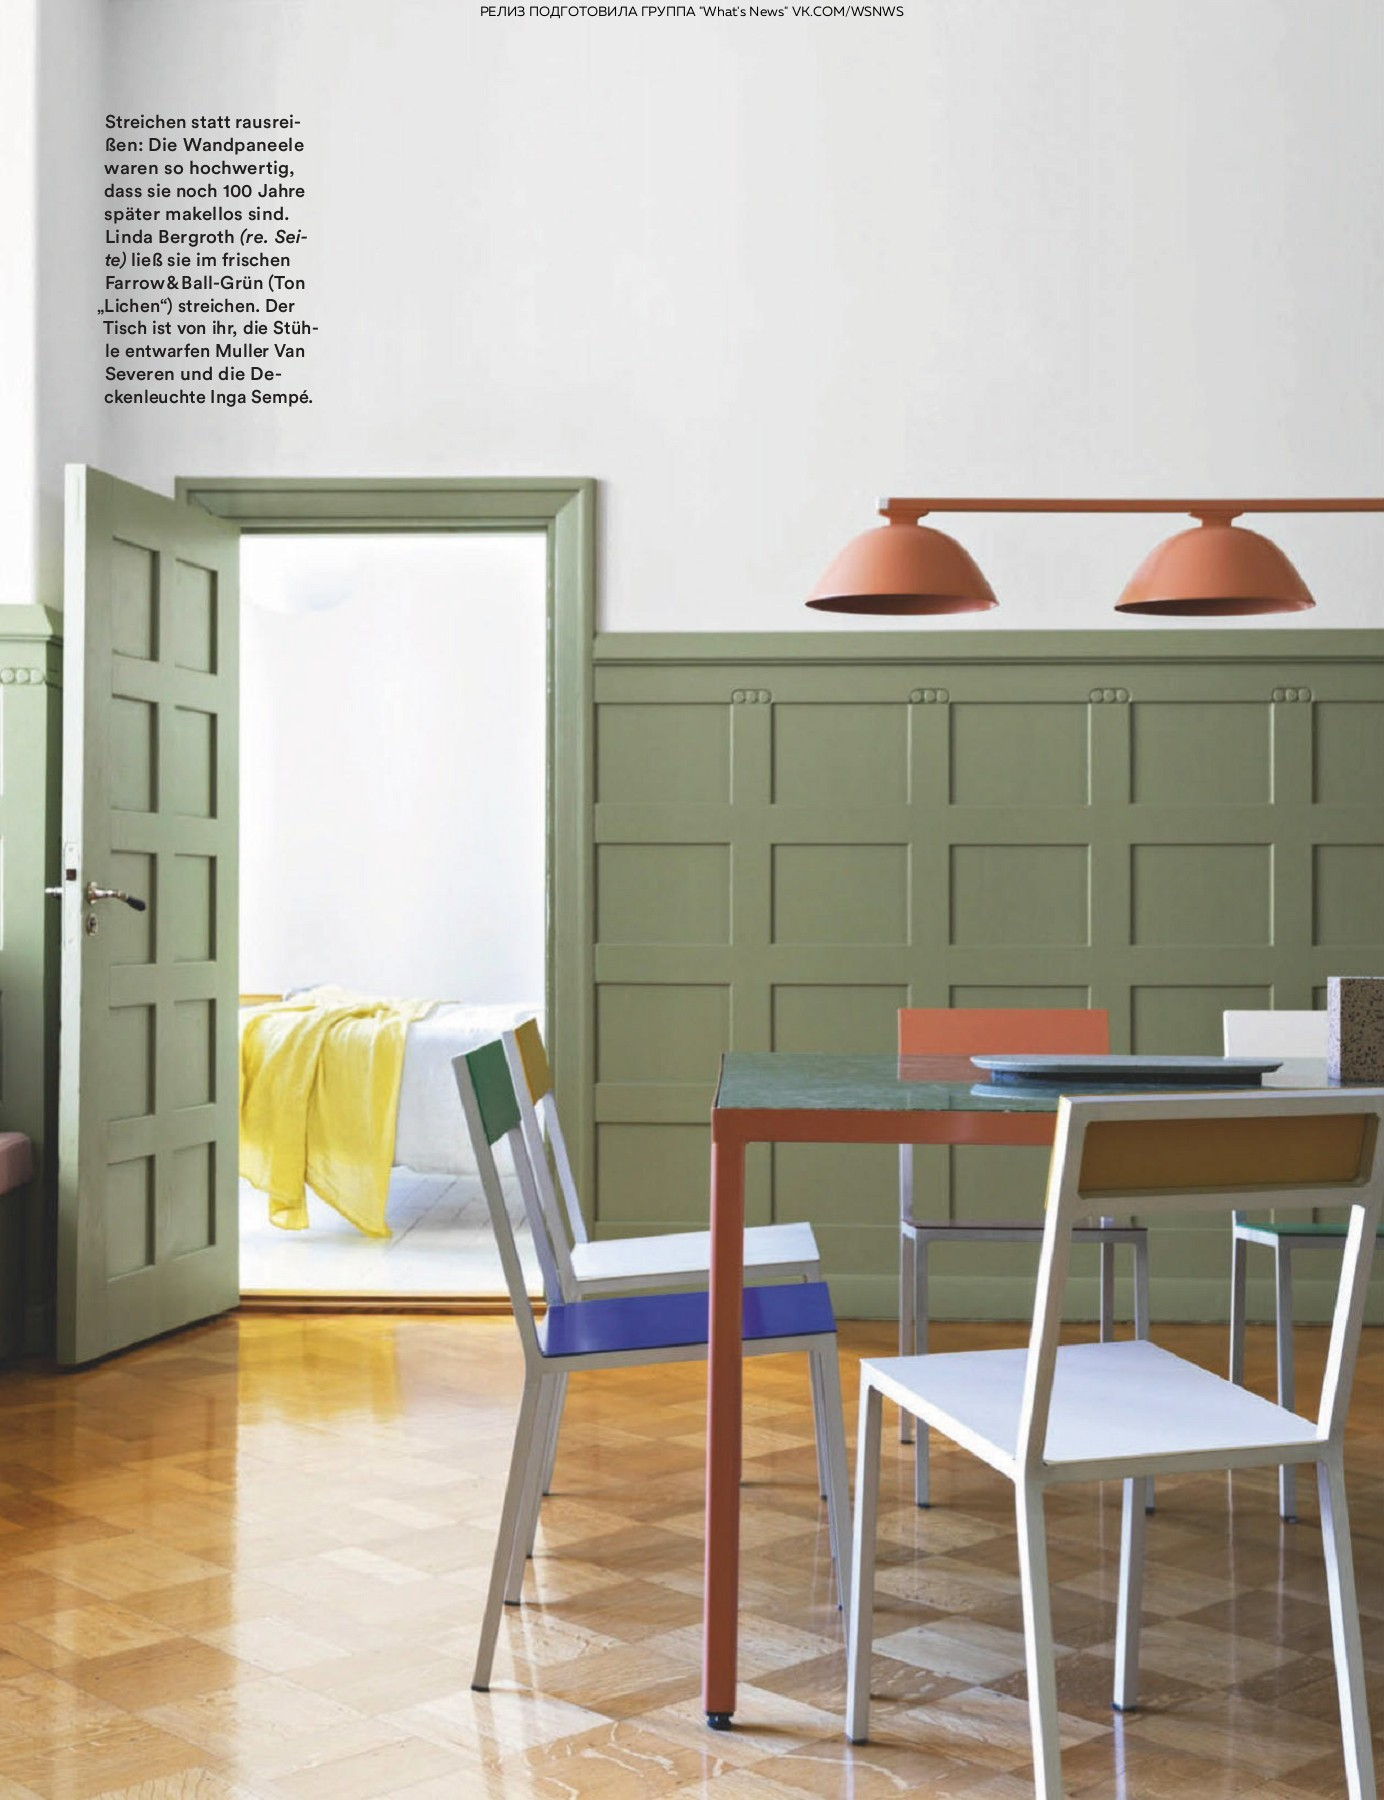 Architectural Digest Germany Mar 2019 Flip Book Pages 101 150 Pubhtml5